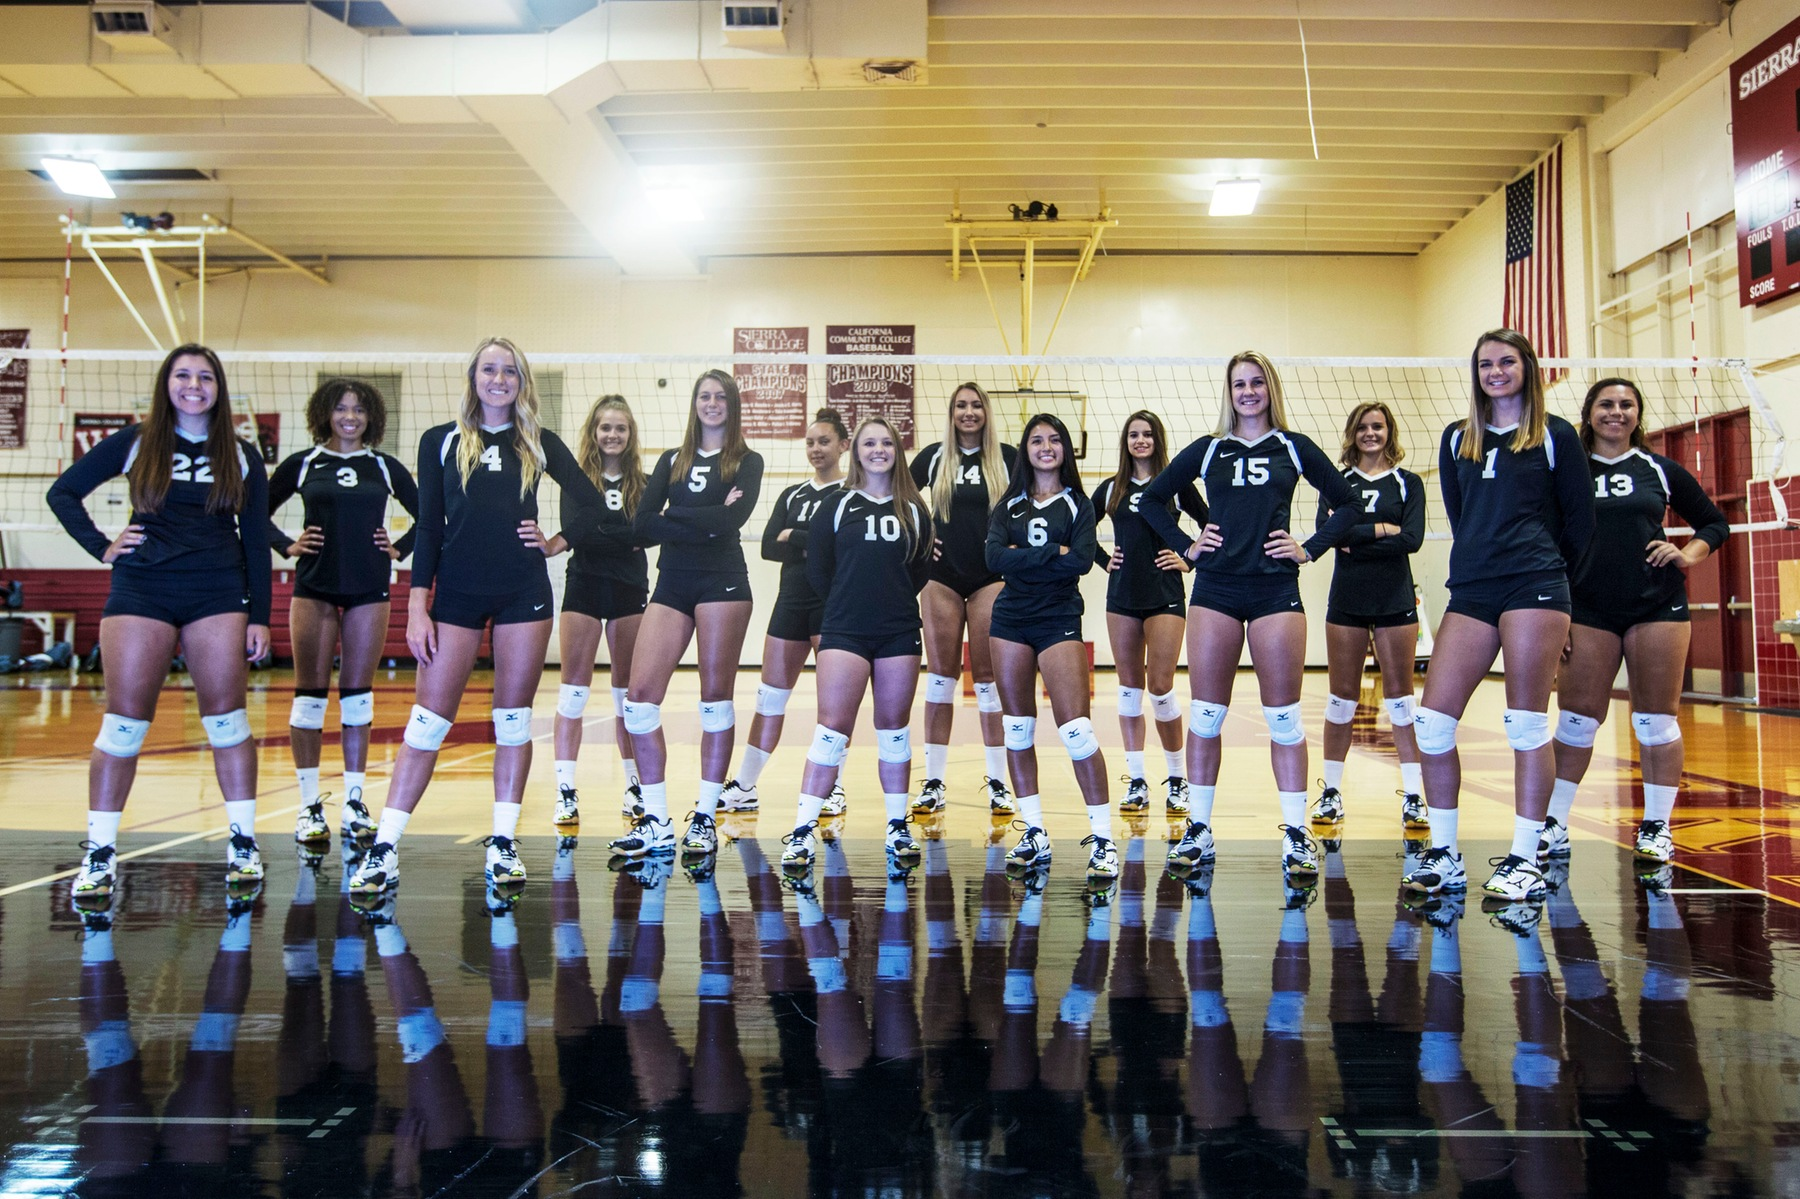 The 2017 Sierra College Women's Volleyball team.